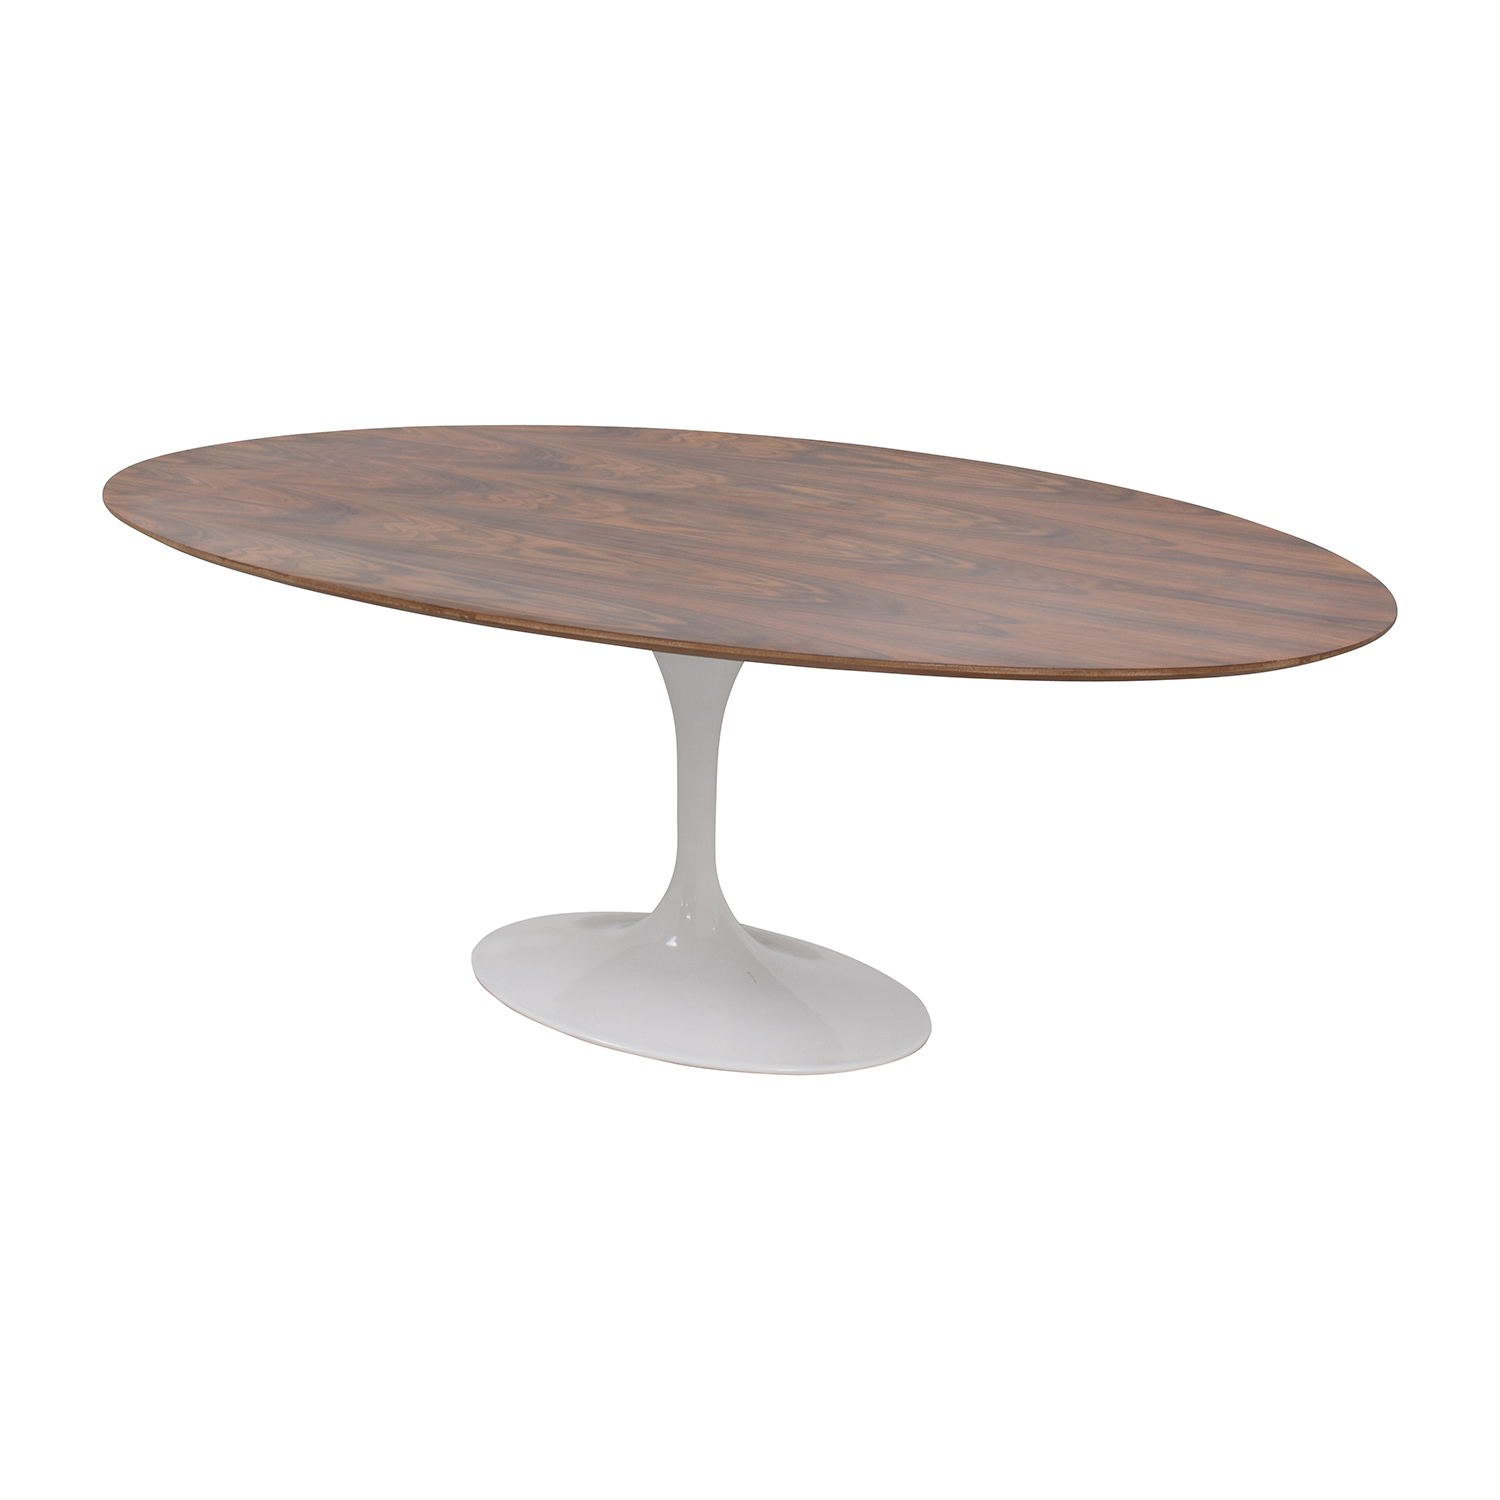 47 off inmod inmod saarinen oval pedestal dining table for In mod furniture